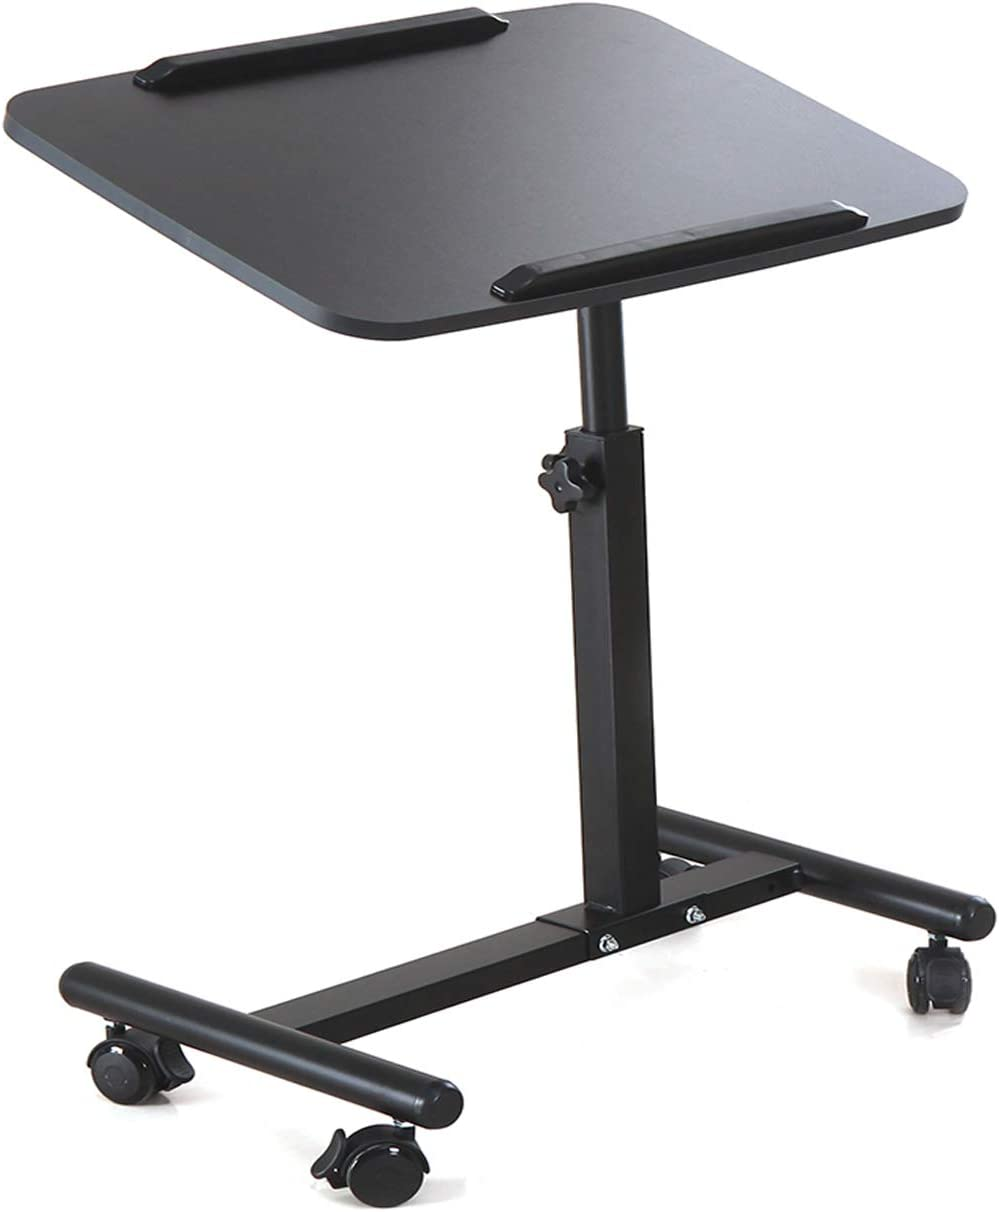 NOVII Mobile Laptop Computer Desk Cart, Angle & Height Adjustable Cost-Effective Rolling Workstation, Sofa/Bed Side Table Table Stand, That Also Works Great as a Lectern/Podium(Matte Black)